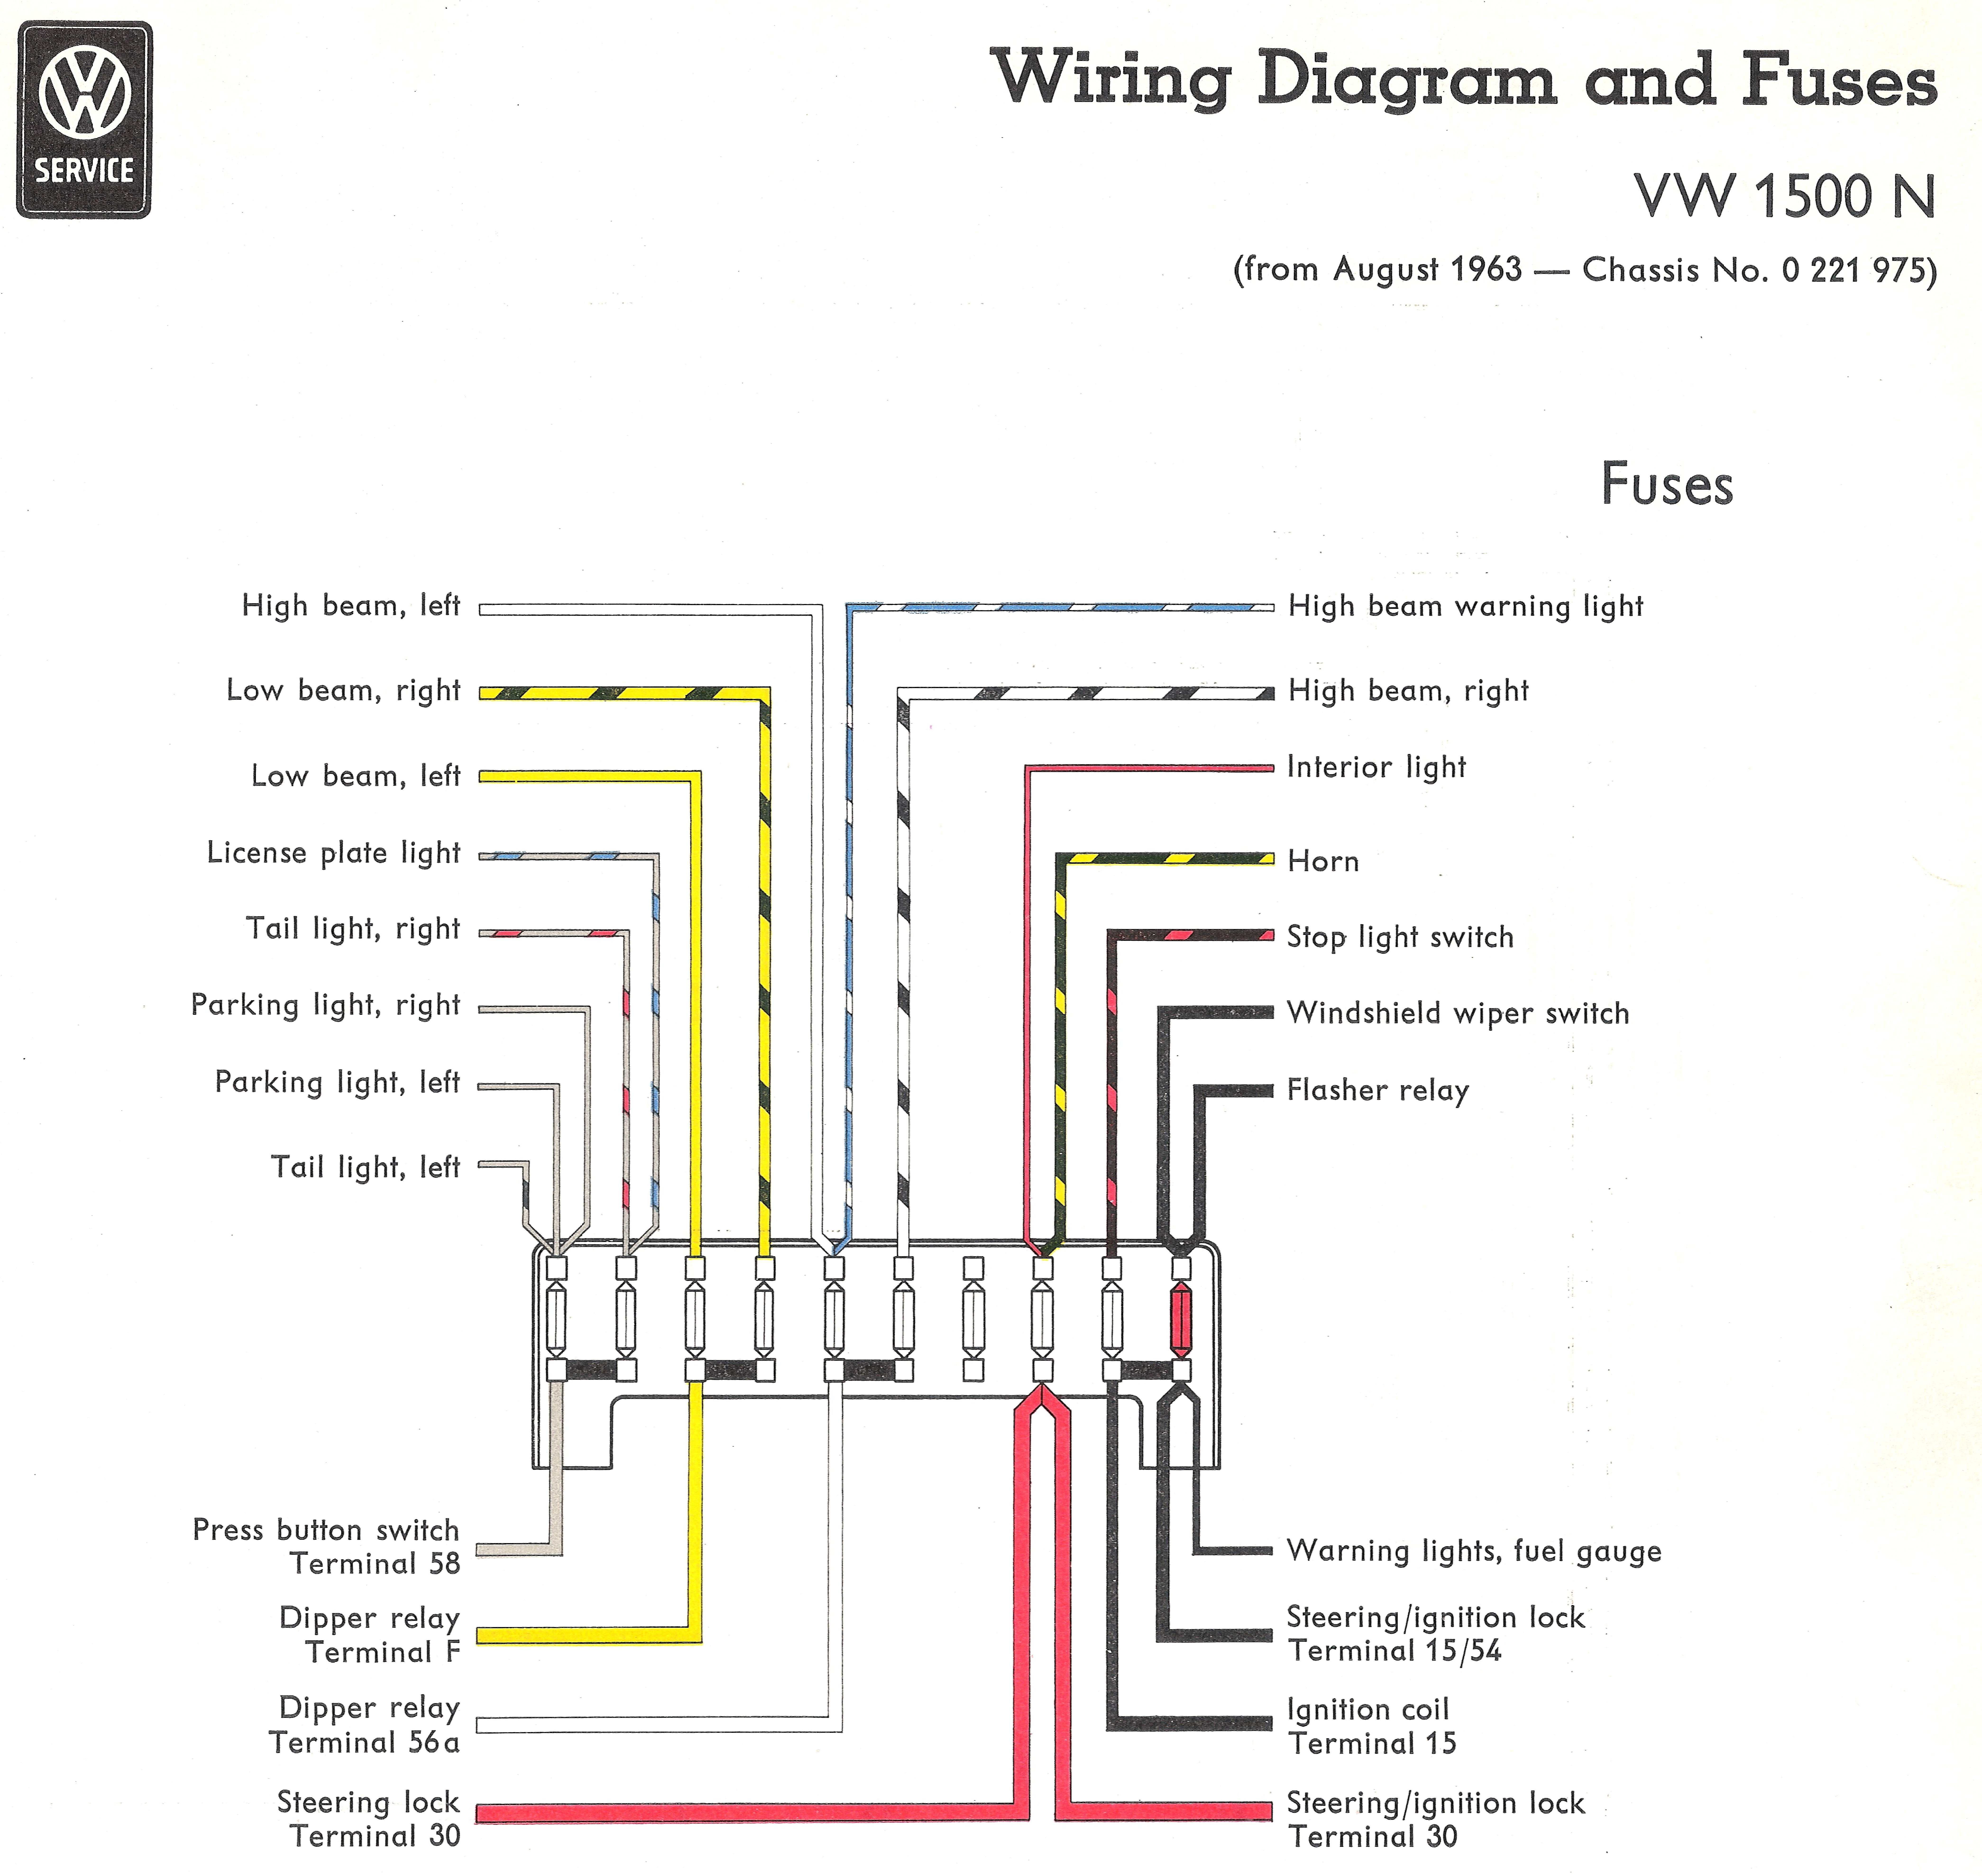 type3_1500n fuse 1200dpi thesamba com type 3 wiring diagrams fuse box wiring diagram at nearapp.co